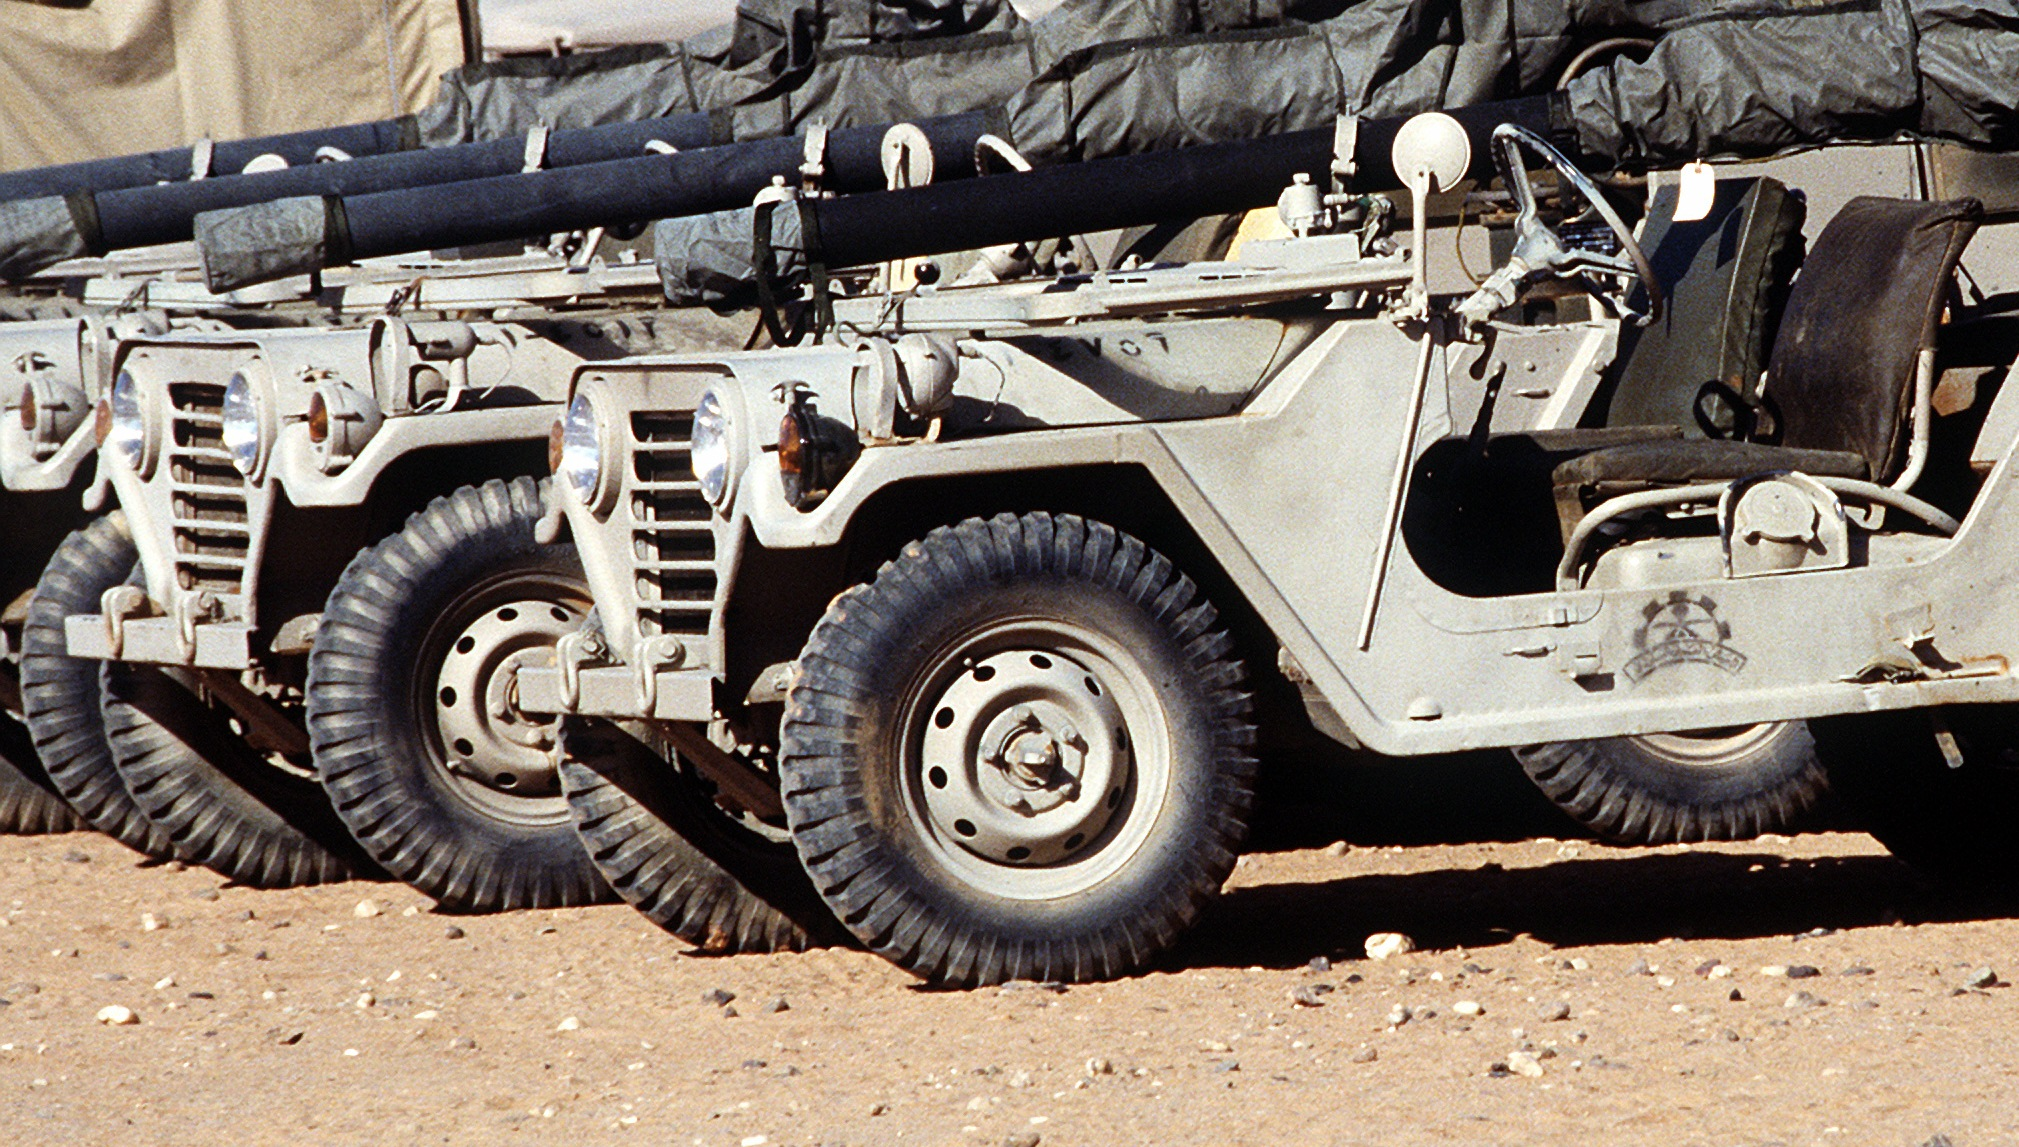 Military Truck Wiring Diagram Simple Options M151a2 Schematic Diagrams Pioneer Car Stereo M47